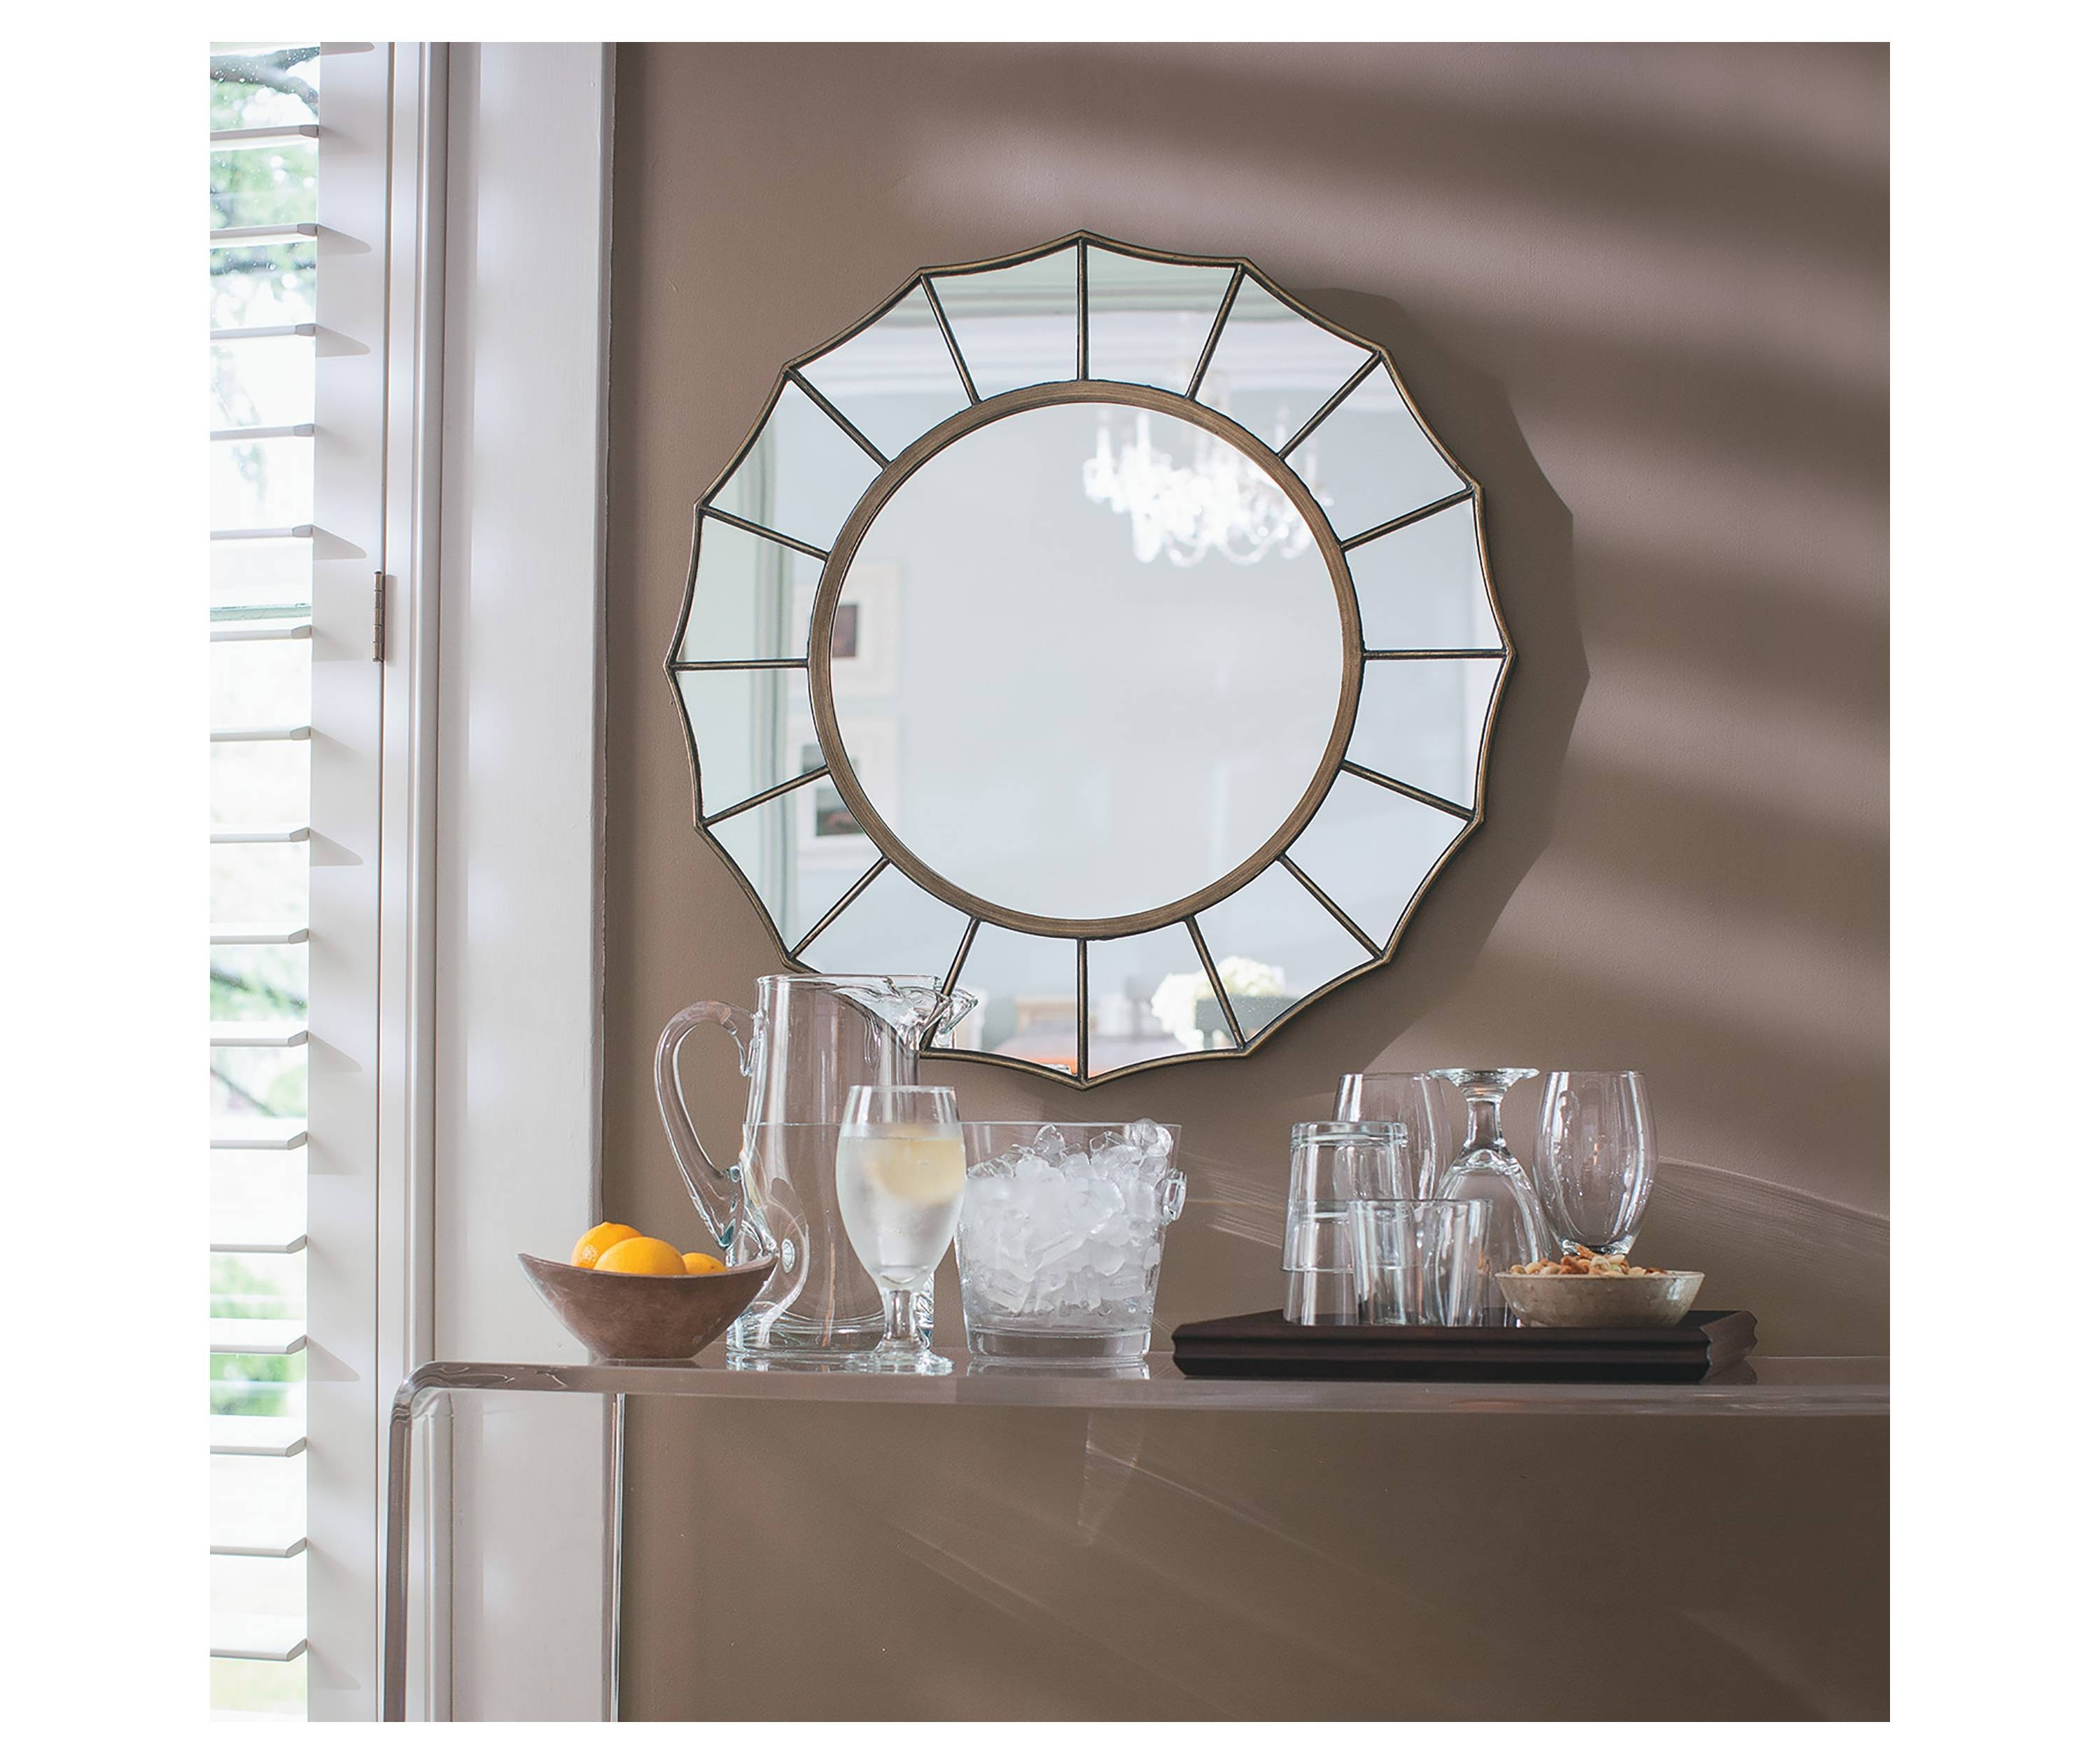 Remodelaholic | Large Round Mirrors Under $75 with regard to Large Round Mirrors (Image 21 of 25)